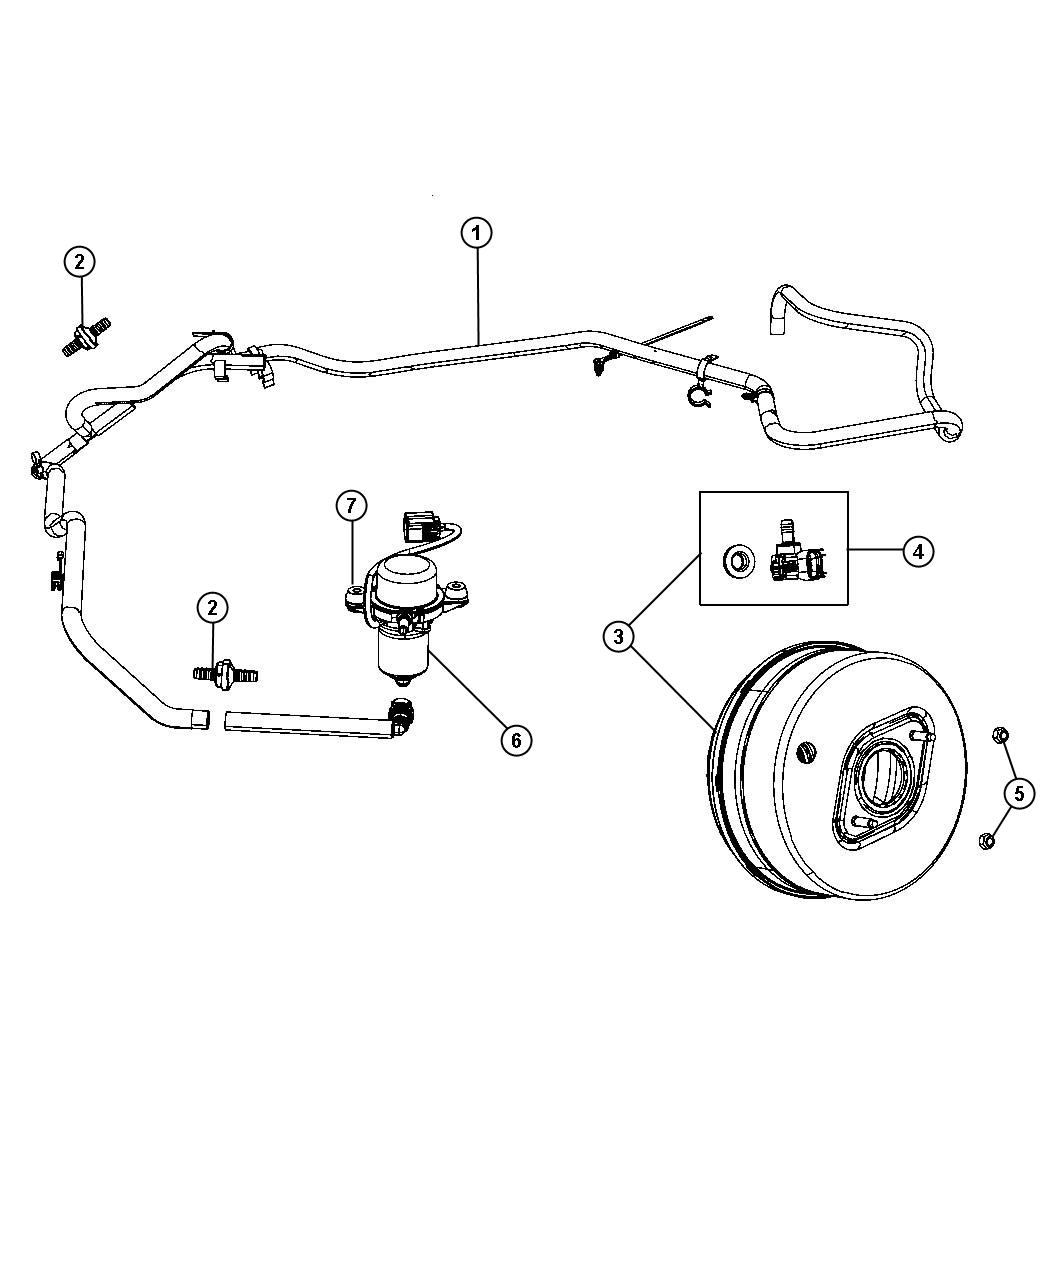 New Power Wheels Wire Harness For Jeeps U0026 Others From Manual Guide